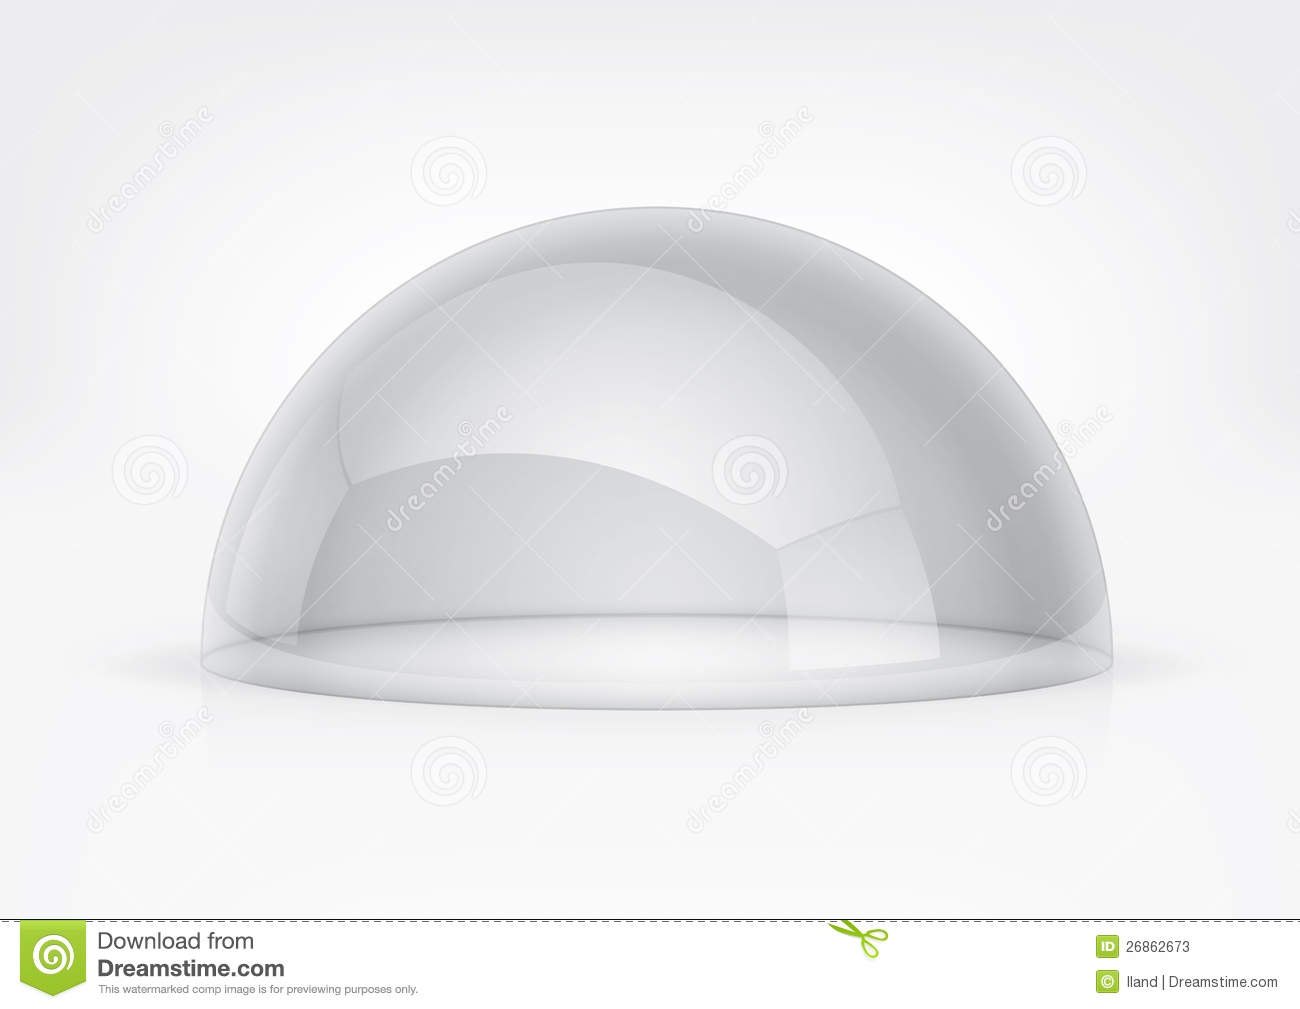 Transparent semi-sphere specks of light and reflections.